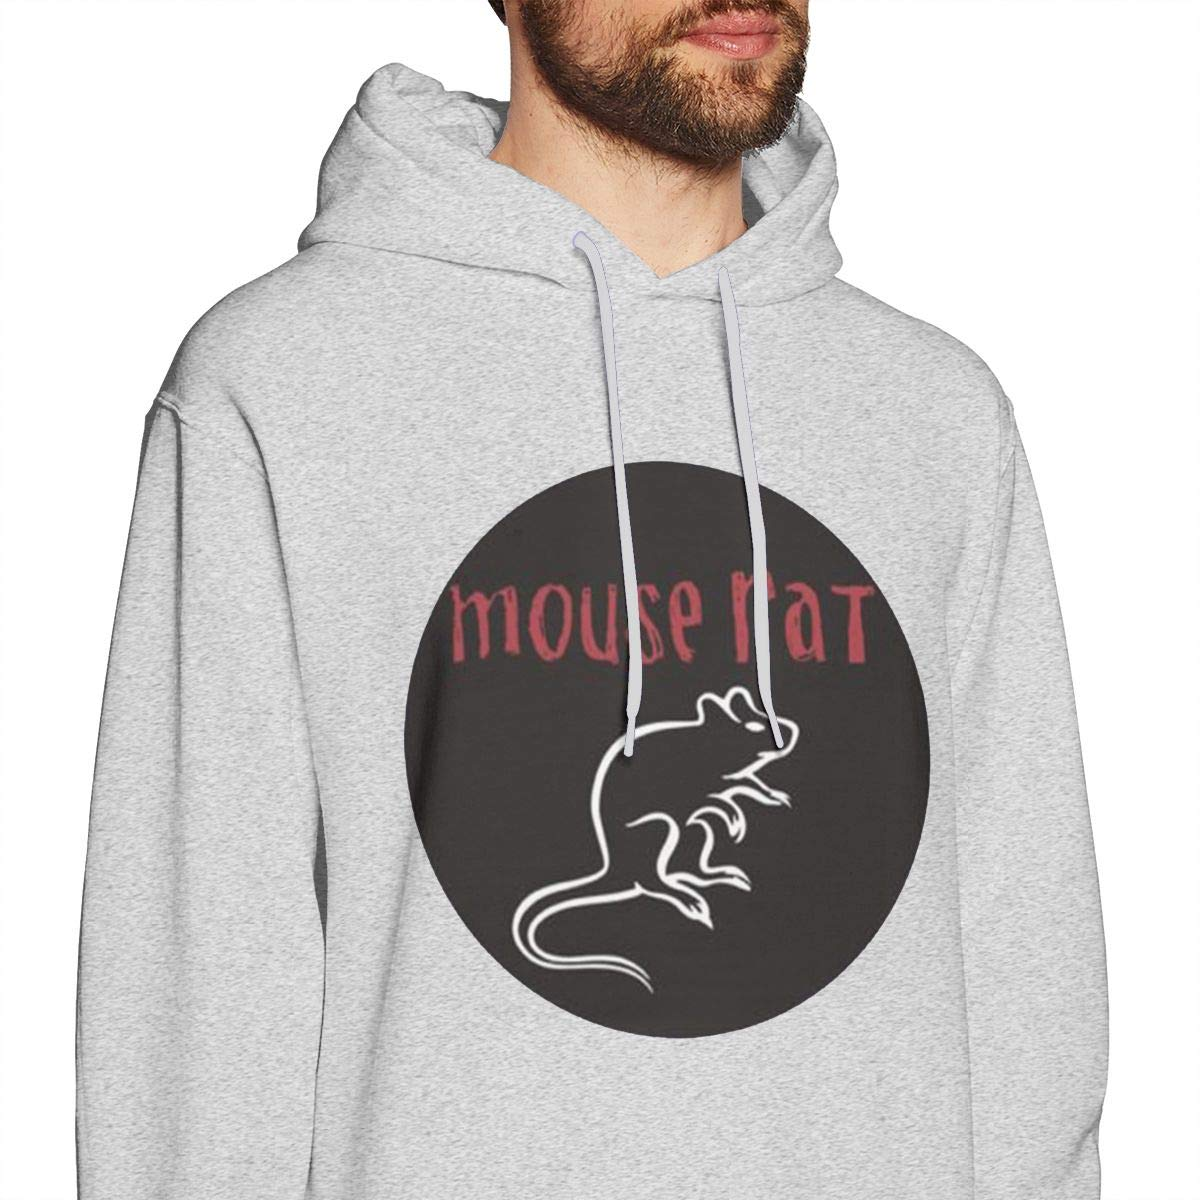 Mens Hooded Sweatshirt Mouse Rat Oversized Classic Print Casual Gray S